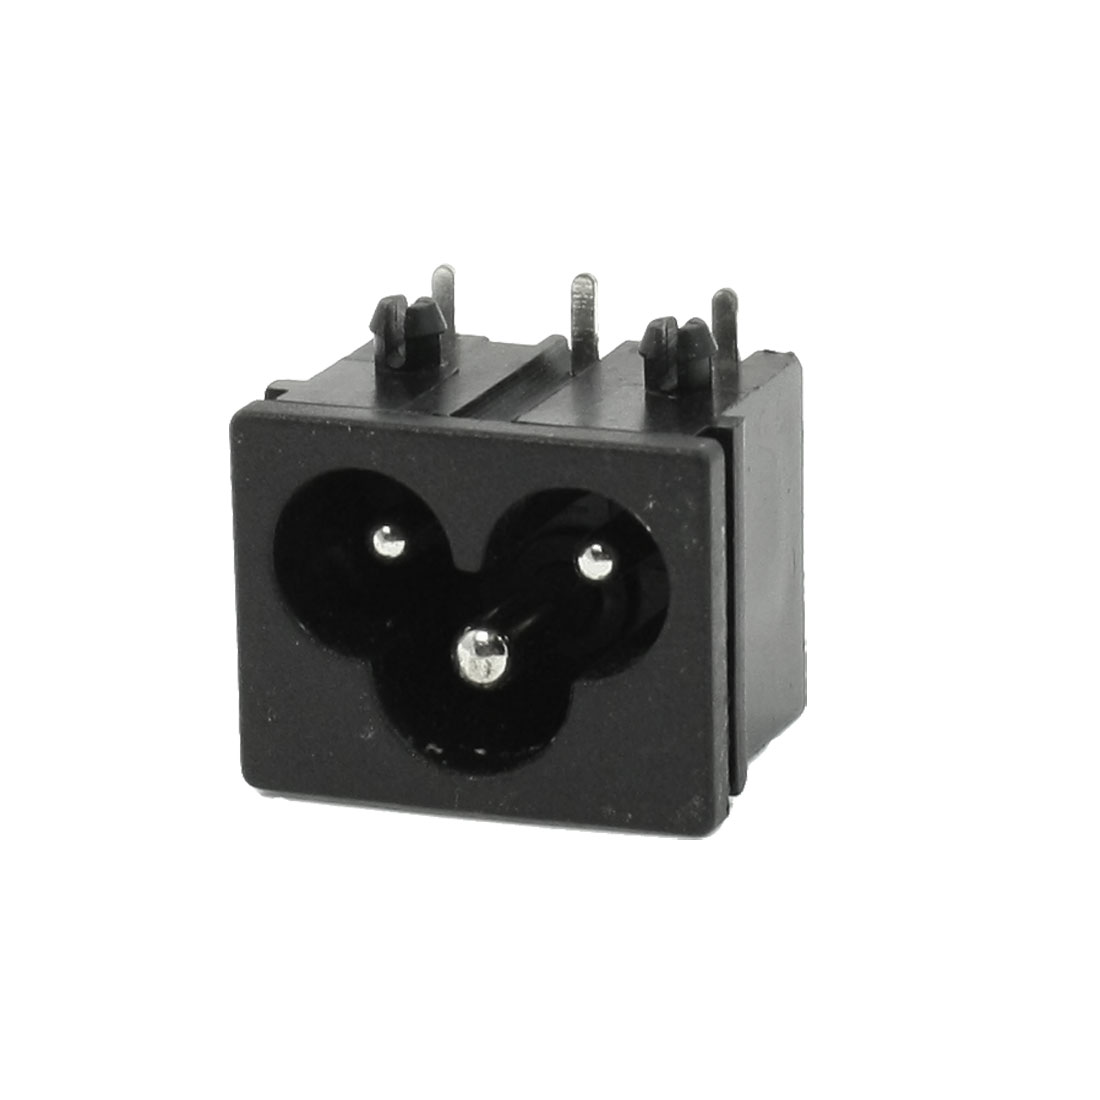 IEC320 C6 Male AC Power Socket Connector 250V 2.5A